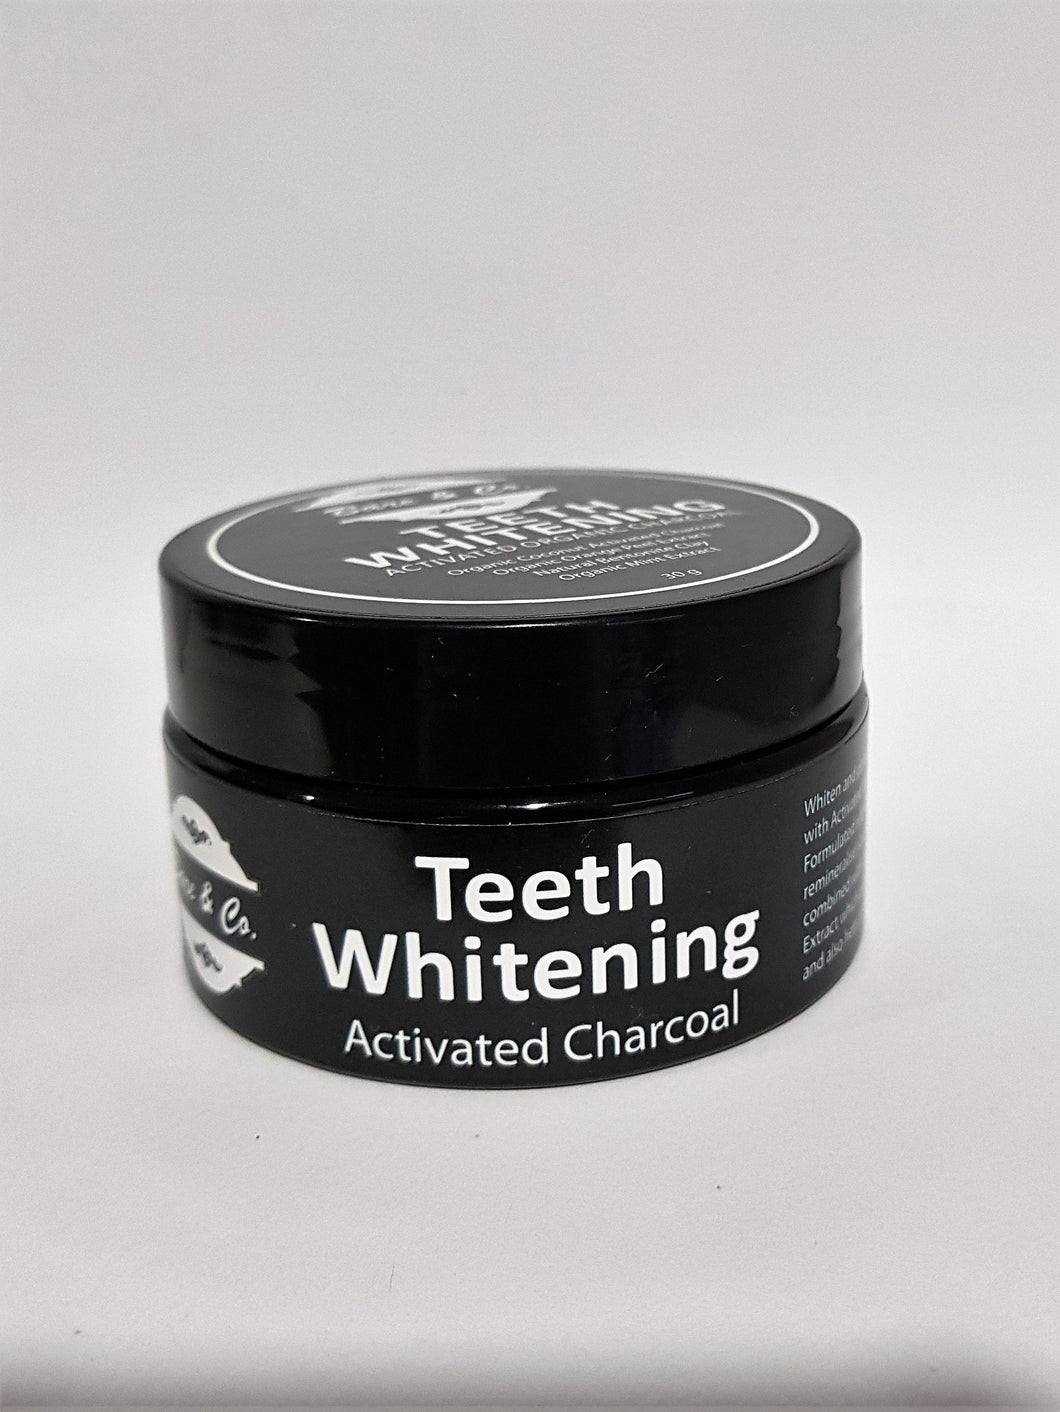 Bare & Co. - Activated Charcoal Teeth Whitening Powder (30g) Bare & Co. - The Well Store